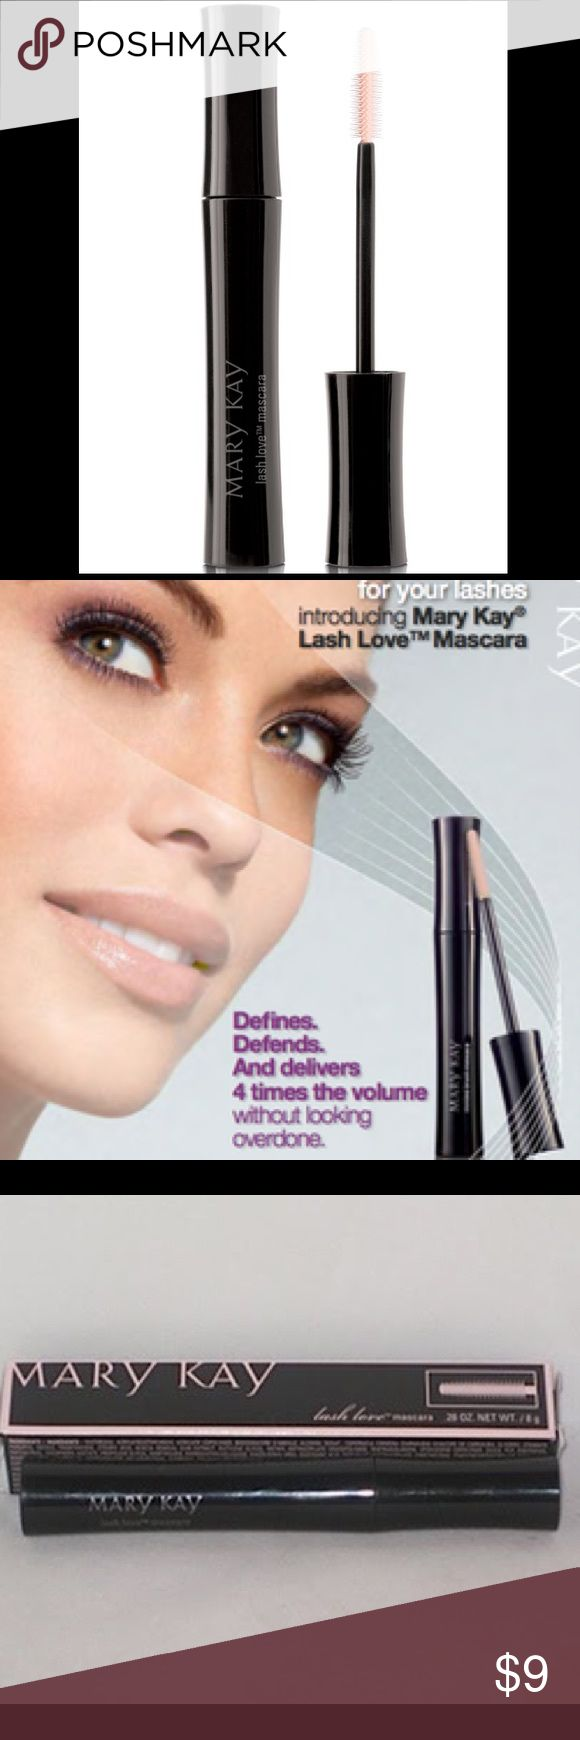 New Mary Kay Lash Love® Lengthening Mascara New in a box Love Lash Mascaras. Love your lashes with the mascara that defines, defends and delivers four times the volume while looking naturally flawless, soft and healthy. The flexible, sculpted brush separates and coats lashes. Flake-, Smudge- and clump-resistant. Mary Kay® Panthenol-Pro Complex™ helps condition lashes and helps defend against breakage. Fragrance-free. Ophthalmologist-tested and suitable for contact lens wearers…